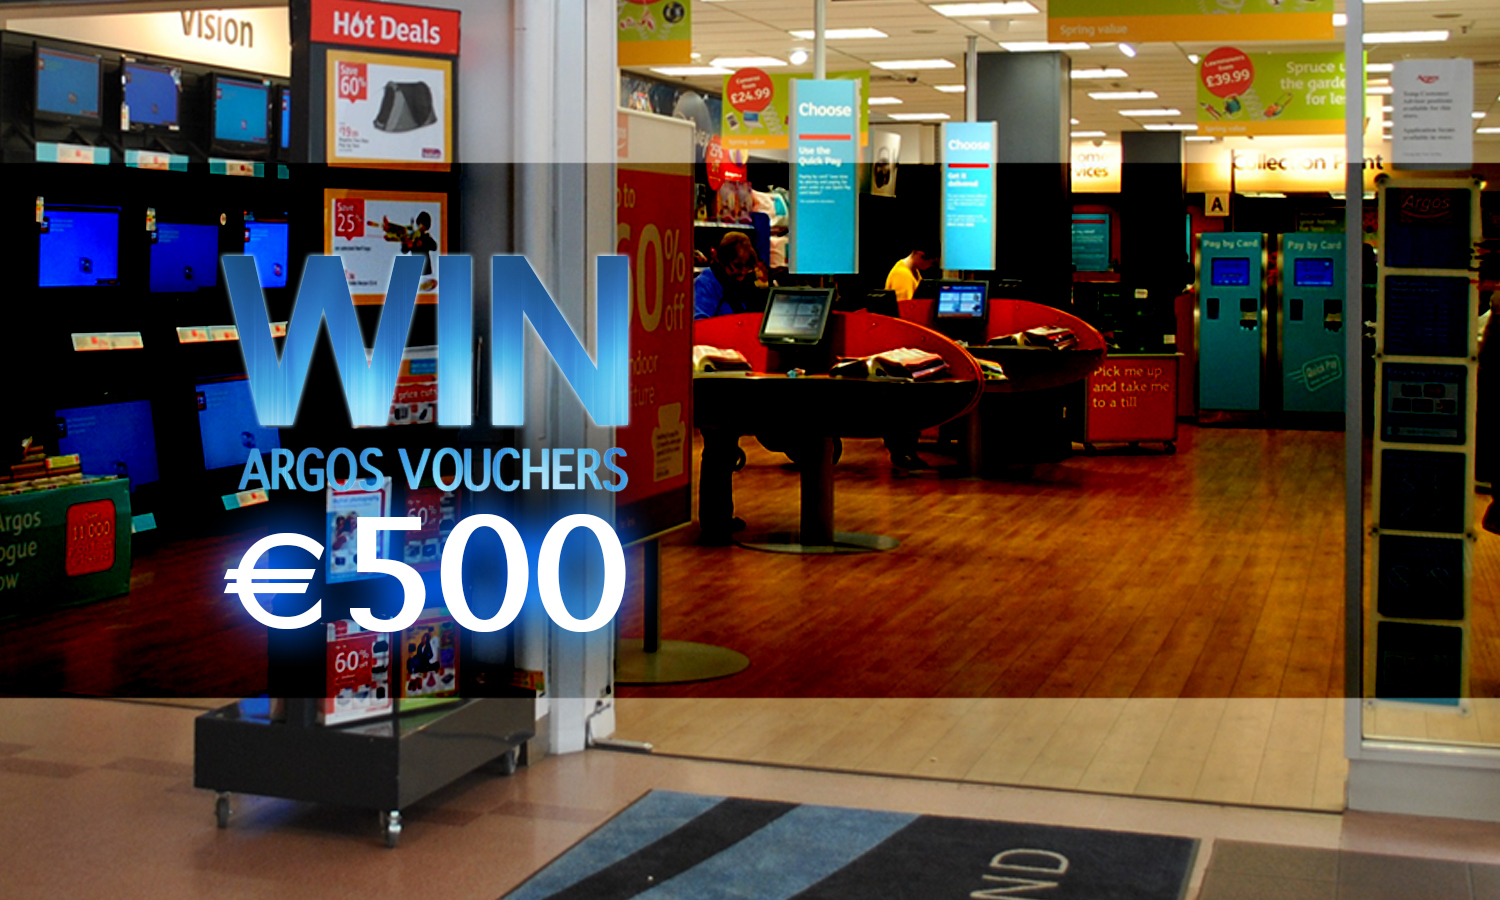 Win €500 Argos Vouchers